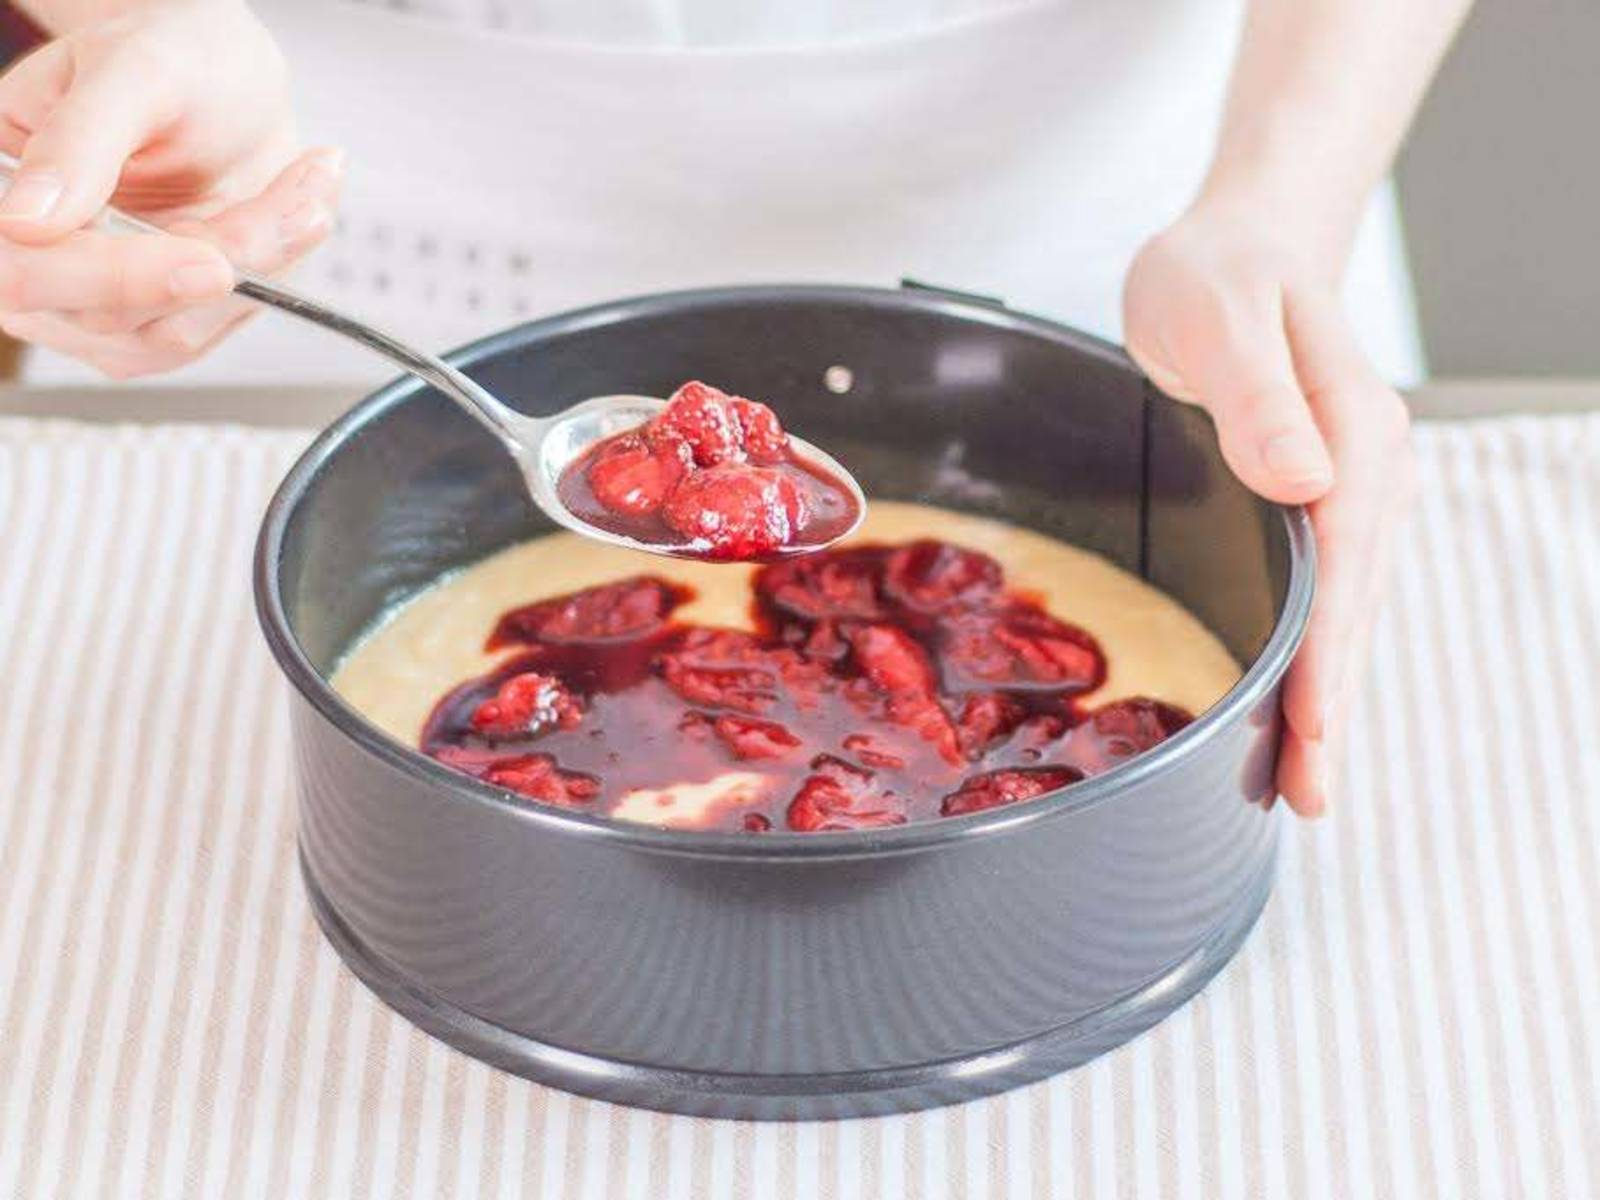 Turn oven down to 175°C/350°F. Brush springform pan with olive oil. Pour half of batter into pan, then top with roasted strawberries and their juices, stopping about half-a-thumb's length from the perimeter.